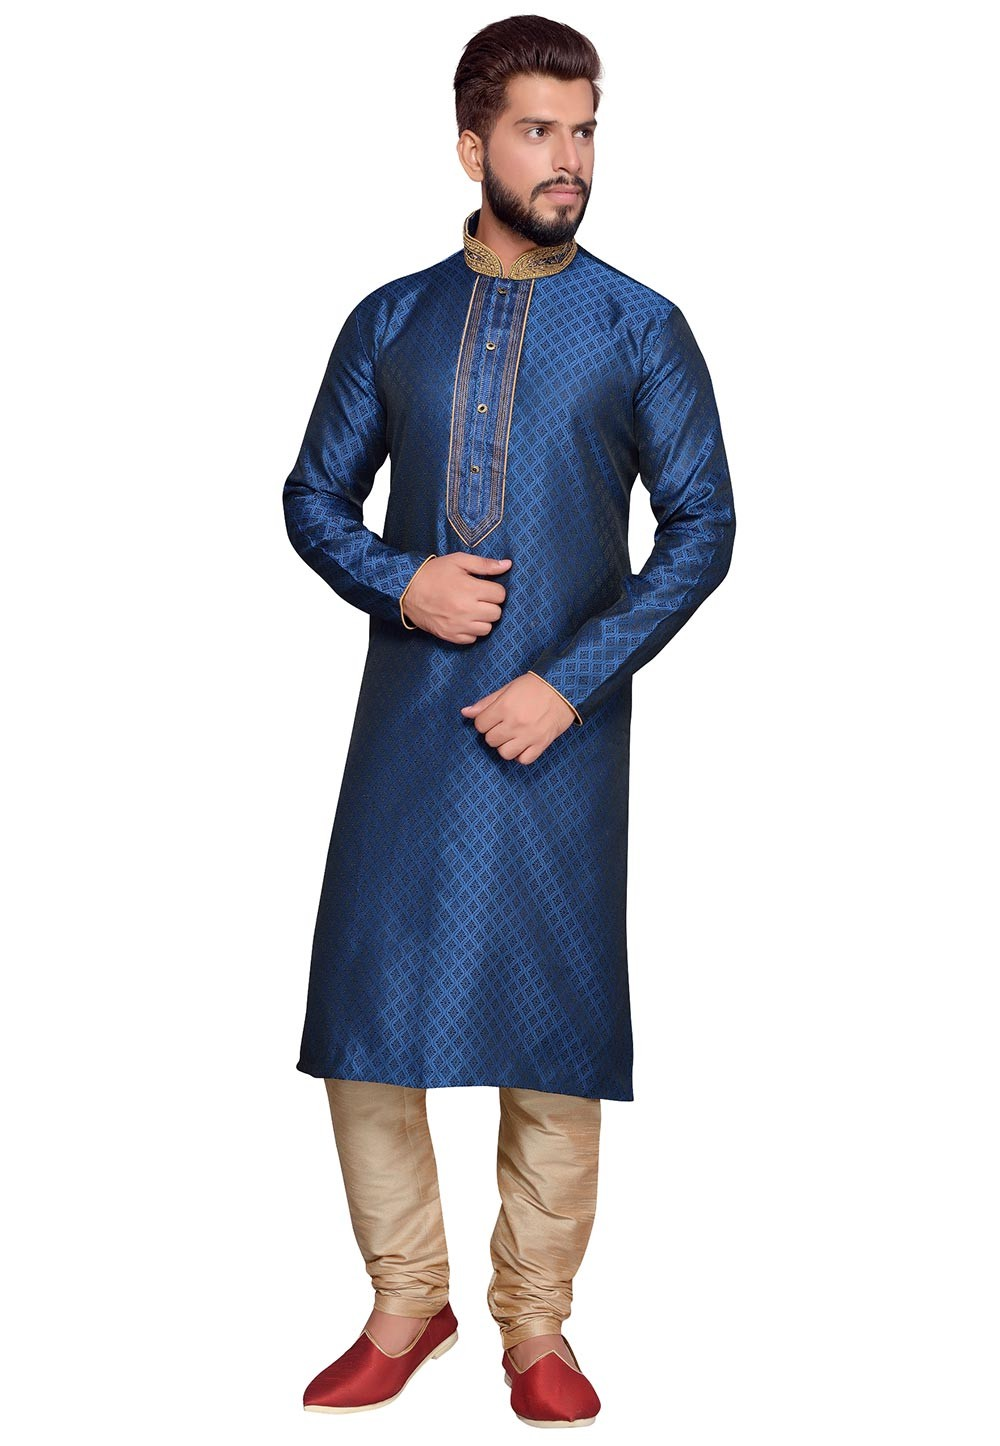 Blue Color Brocade Fabric Designer Kurta Pyjama With Thread Work.